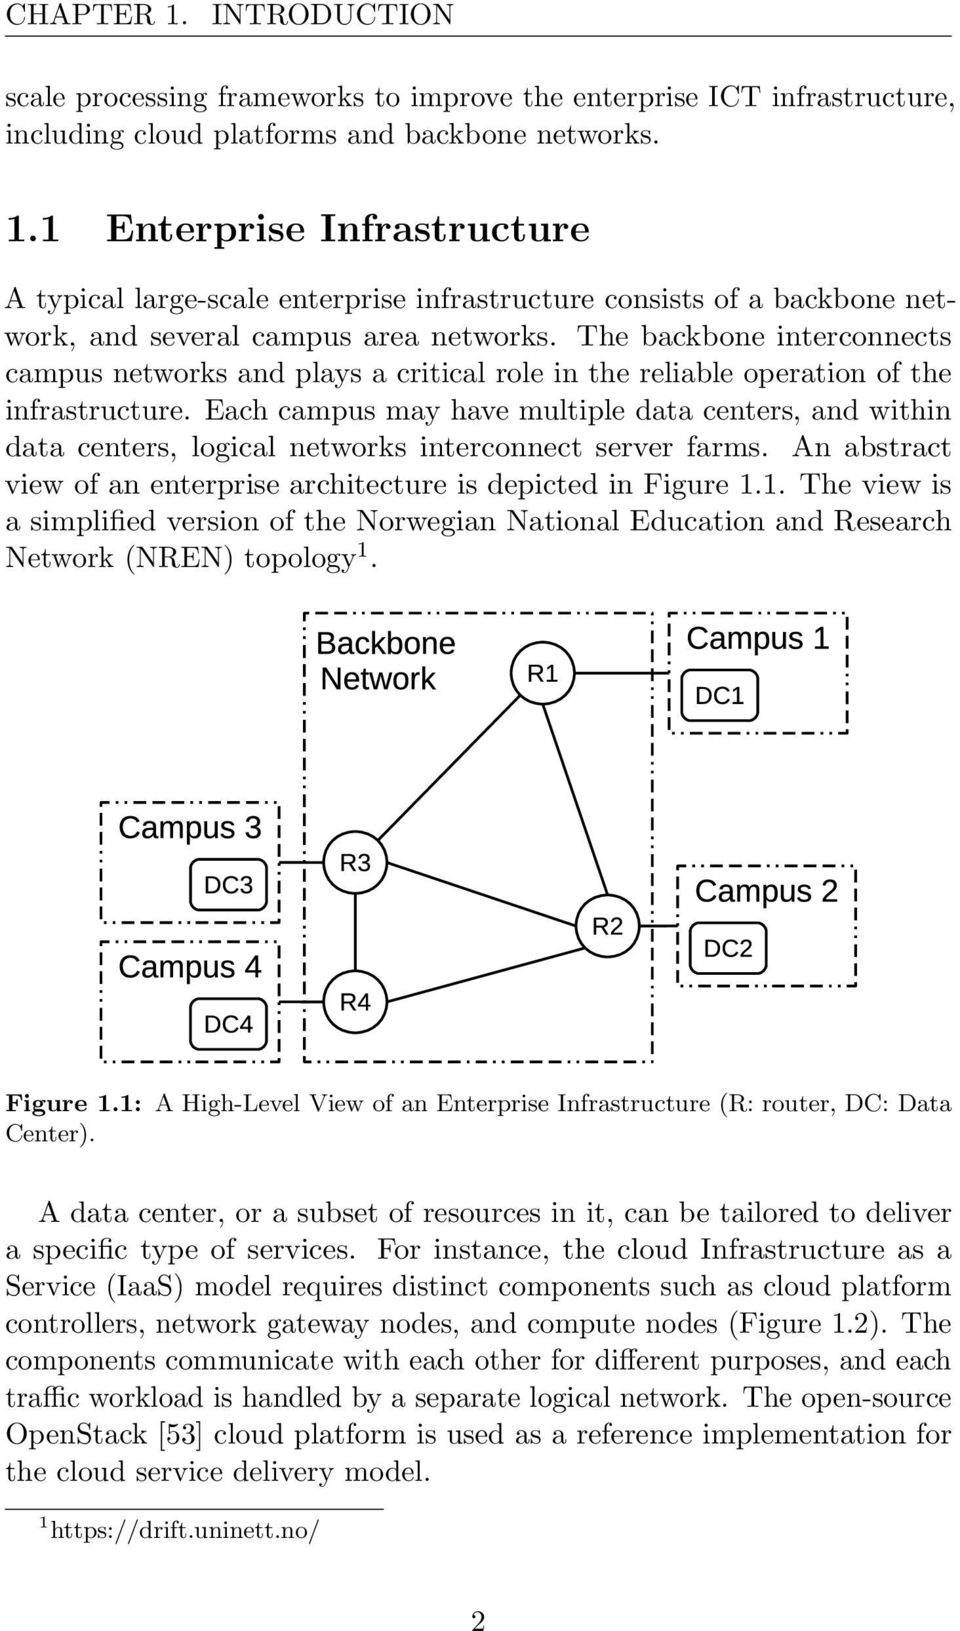 Each campus may have multiple data centers, and within data centers, logical networks interconnect server farms. An abstract view of an enterprise architecture is depicted in Figure 1.